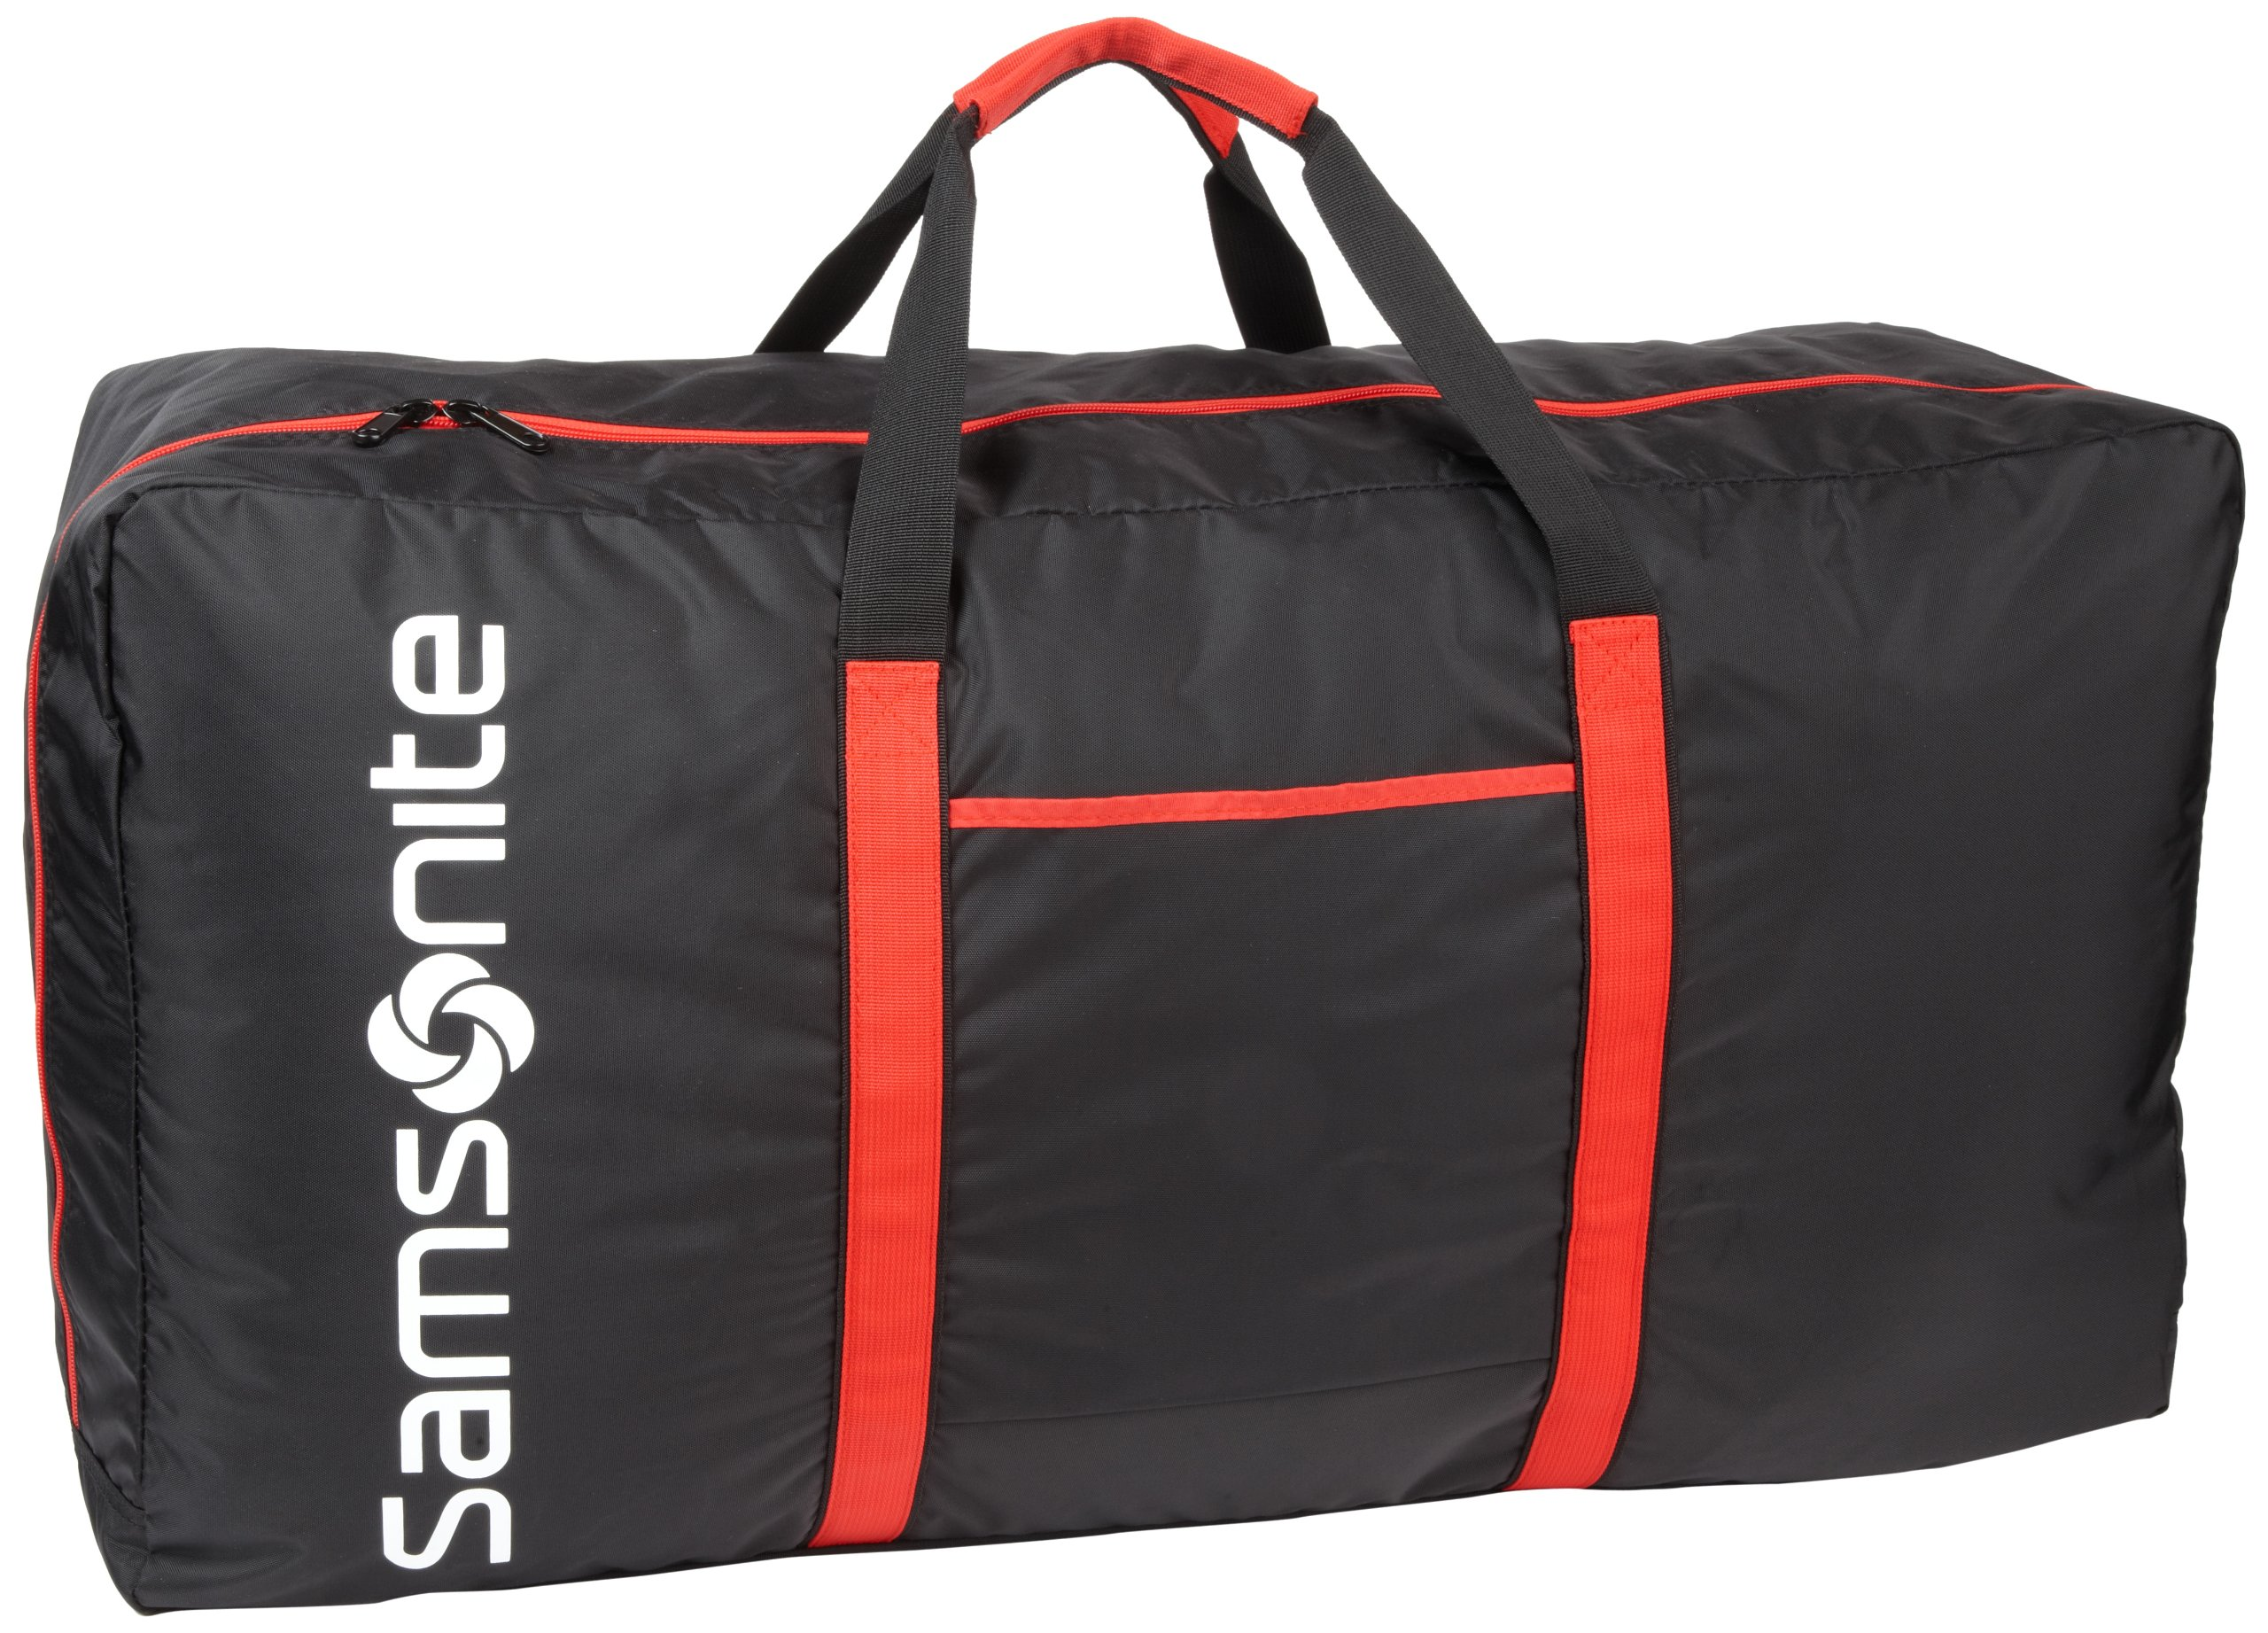 Samsonite Tote-a-ton 32.5 Inch Duffle Luggage, Black